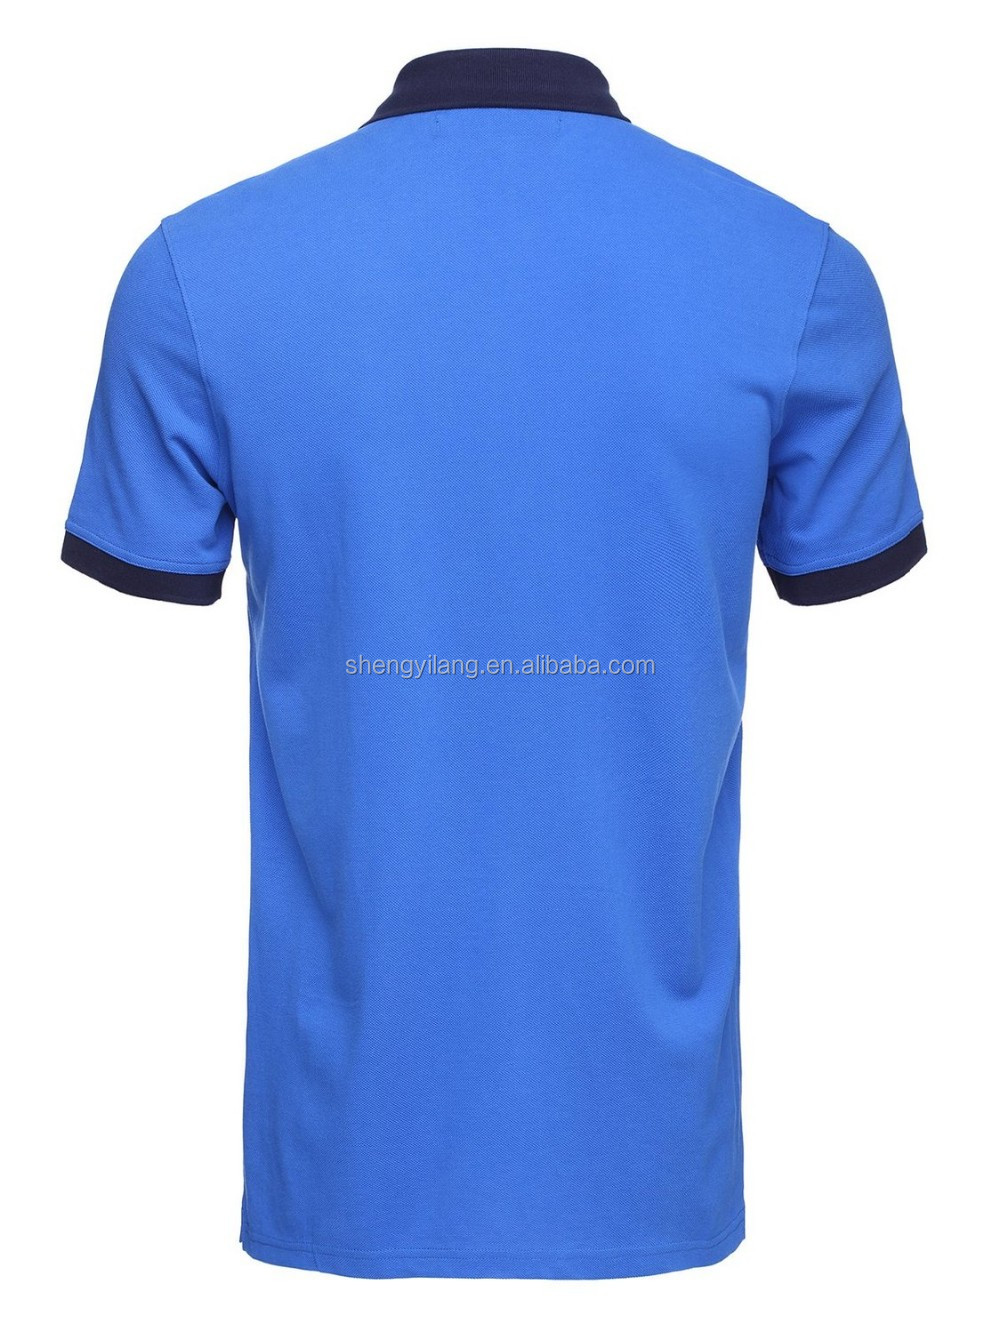 cheap mens royalblue 100 cotton pique 180g dri fit hidden placket polo shirts LT58789